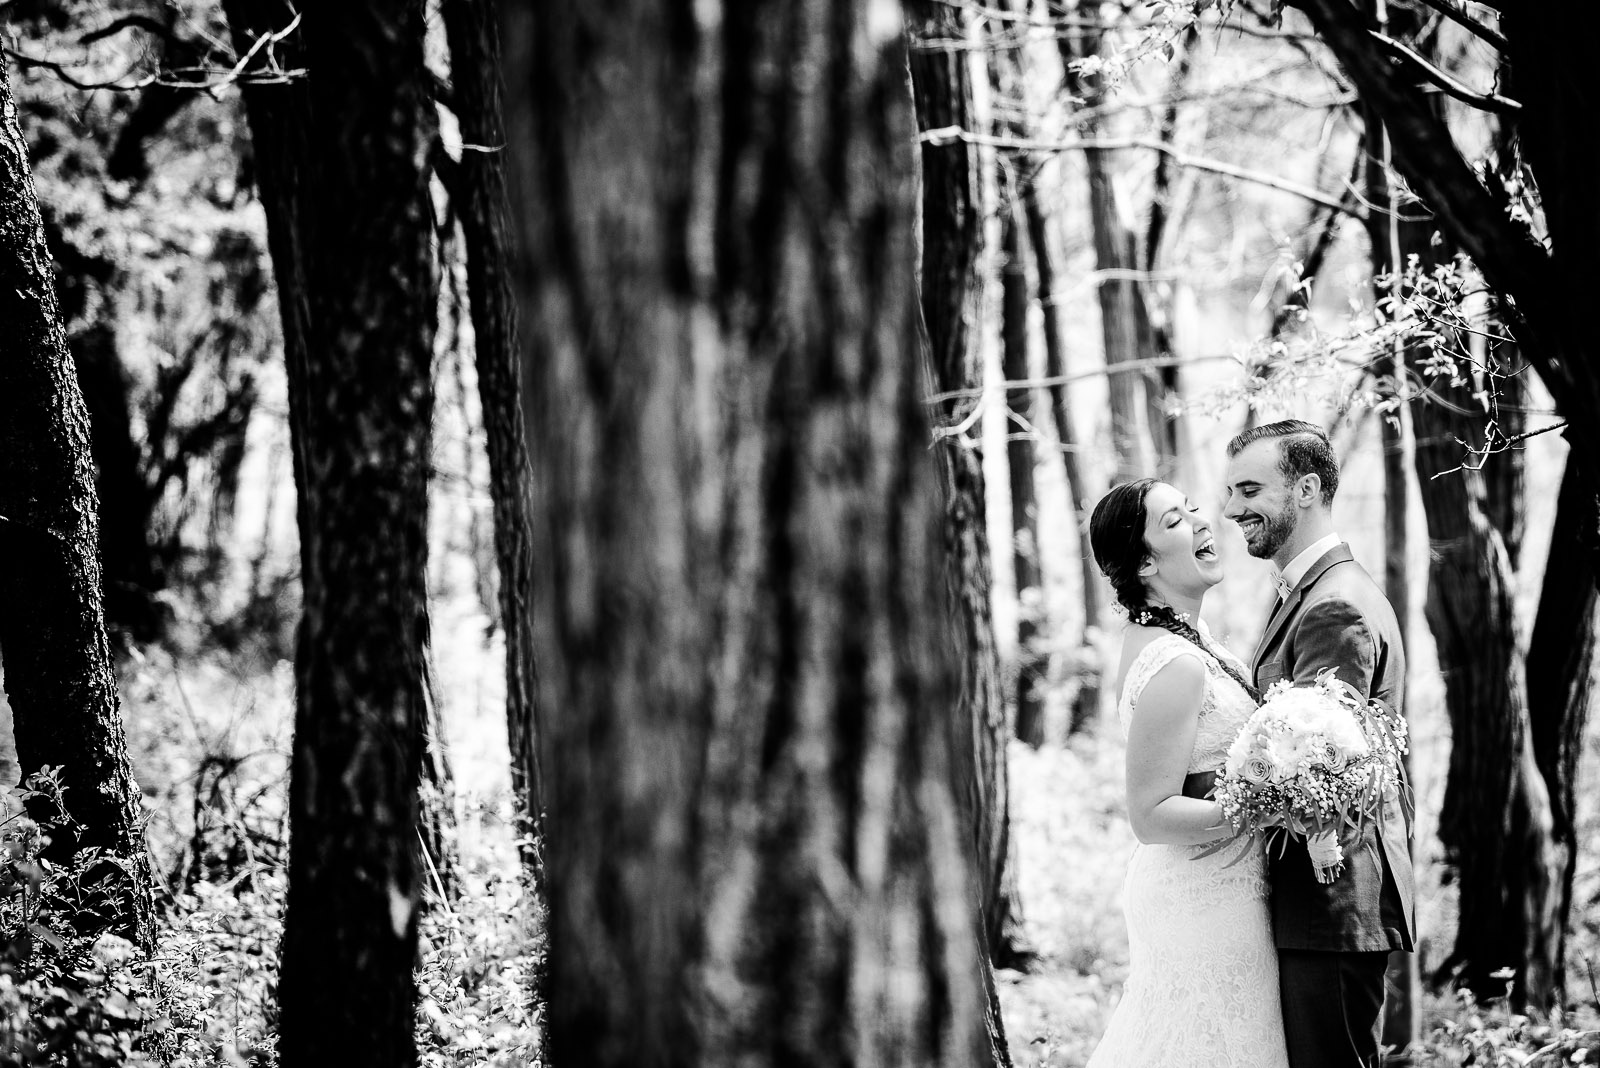 Eric_and_Christy_Photography_Blog_Katie_Travis_Wedding-29